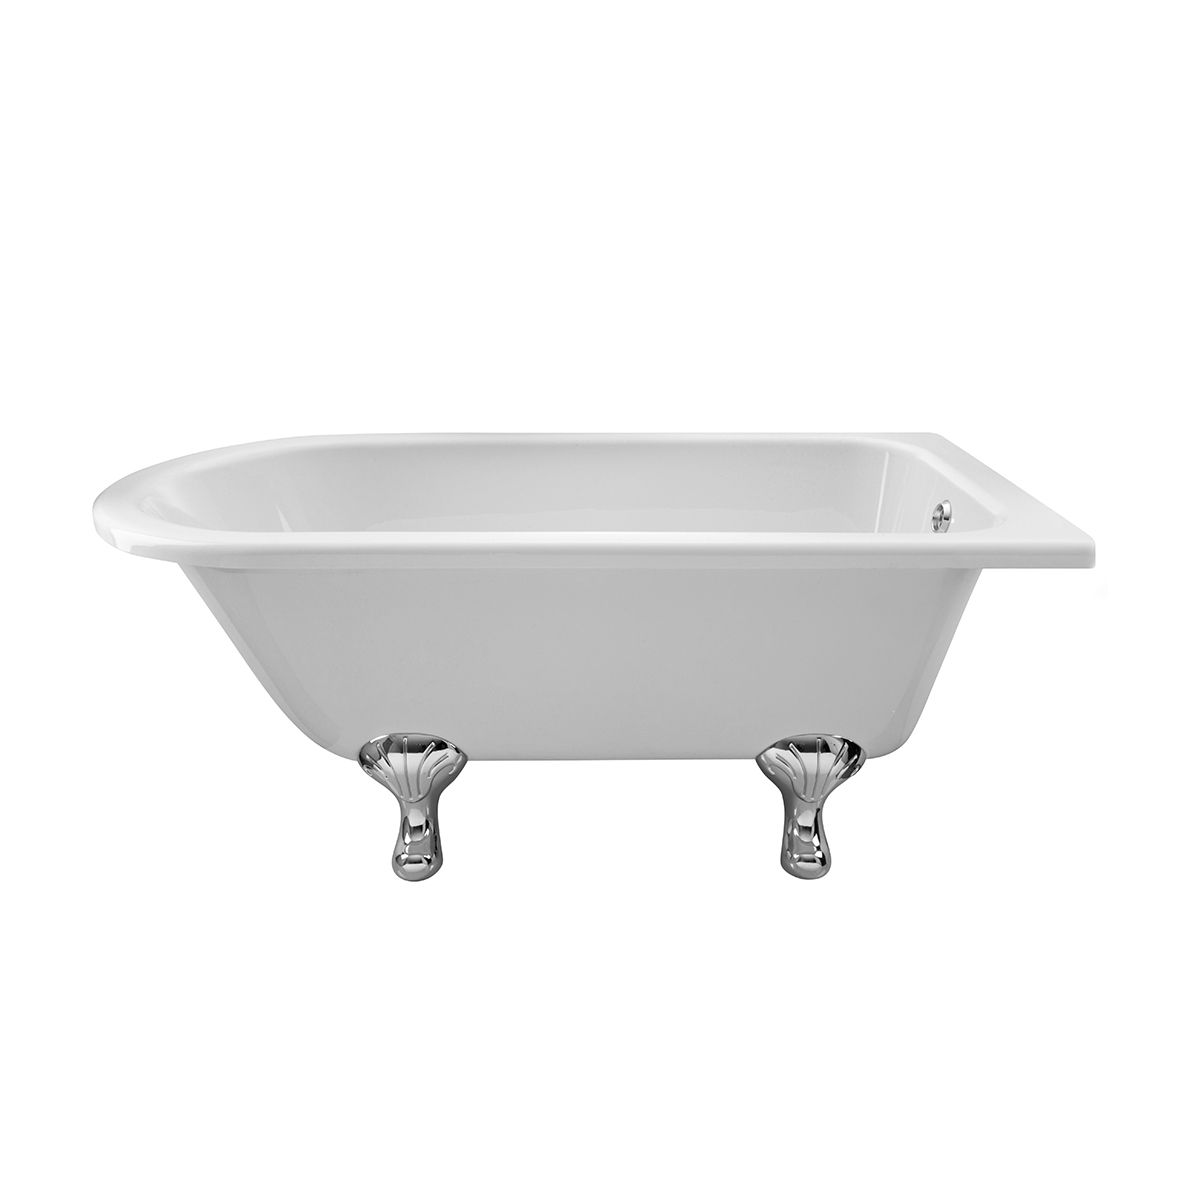 Winterburn Roll Top Bath with Corbel Feet